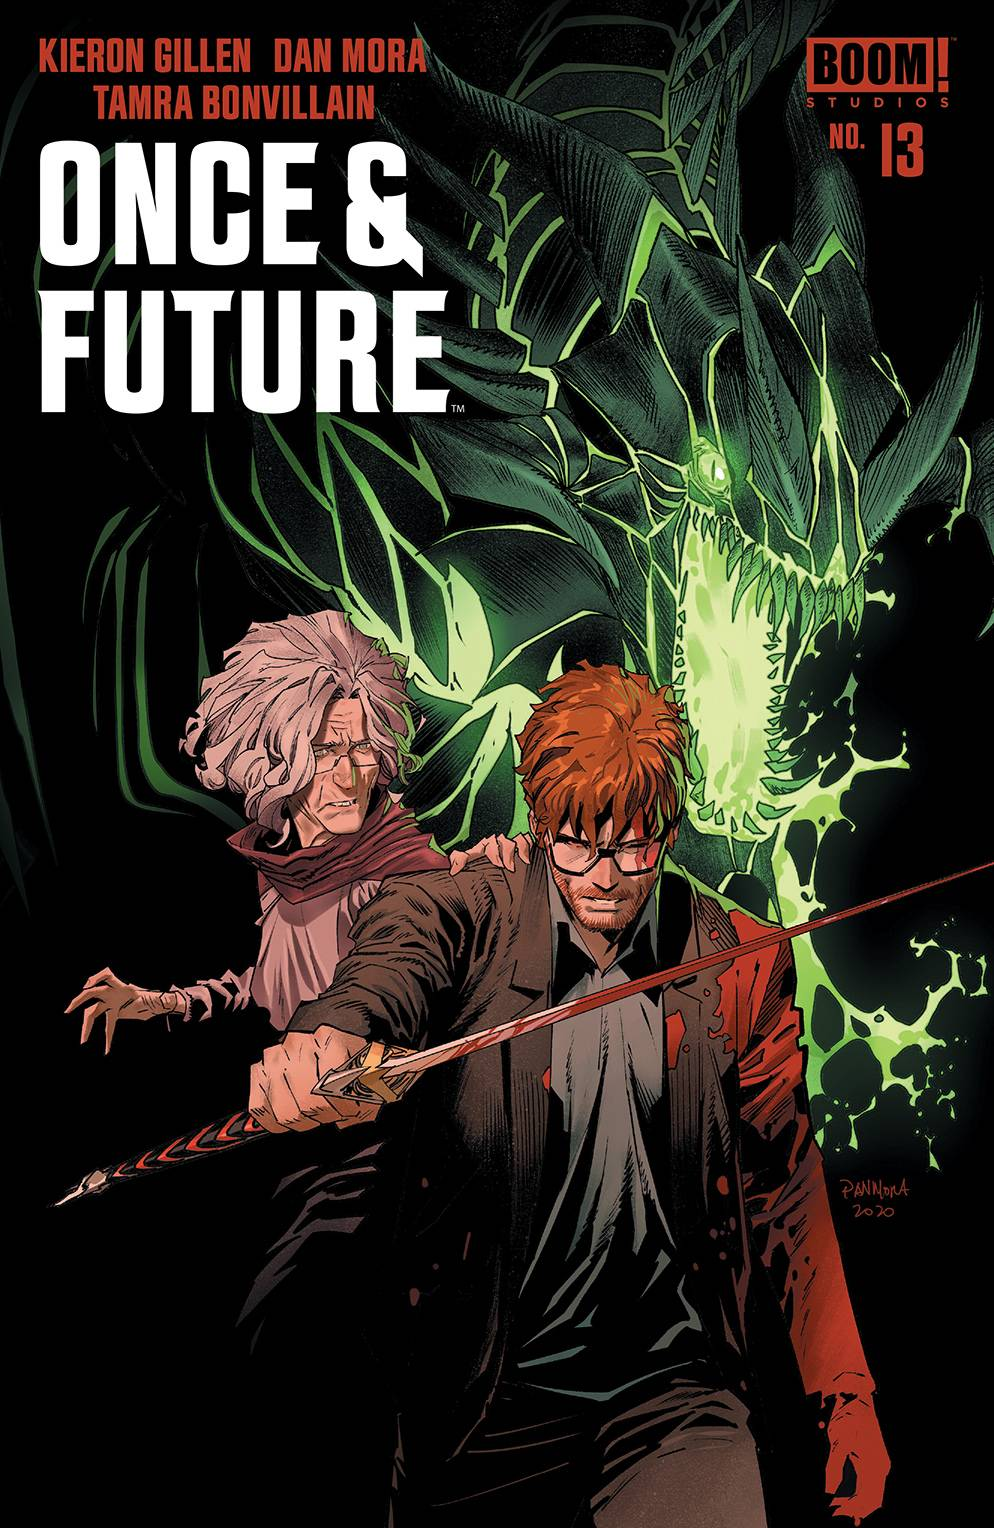 Once & Future #13 (2020)